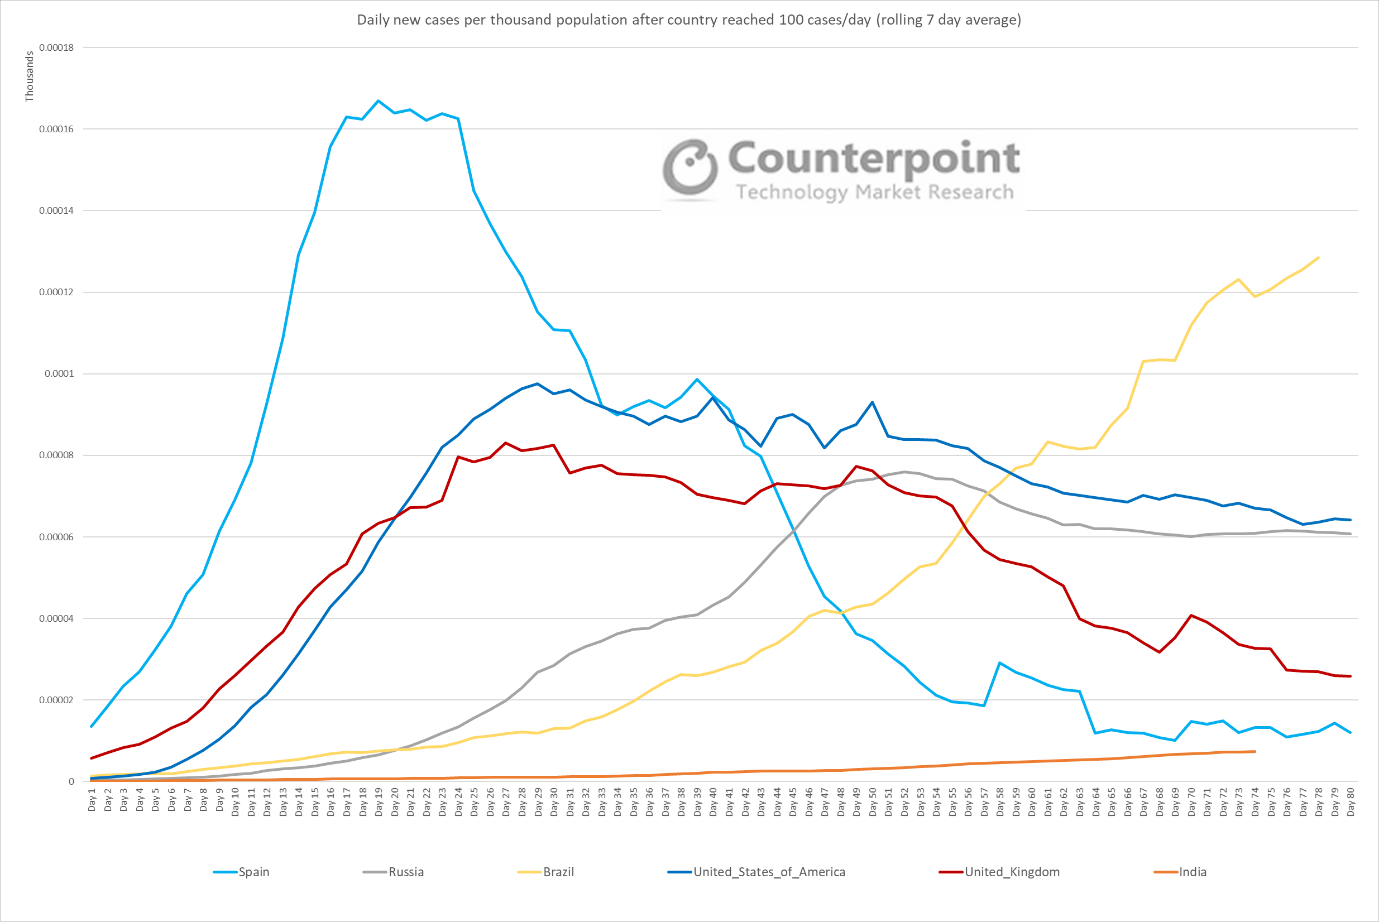 Counterpoint Daily New Cases per Thousand Population After Countries Reached 100 Cases per Day - Counterpoint - Week 24 Update